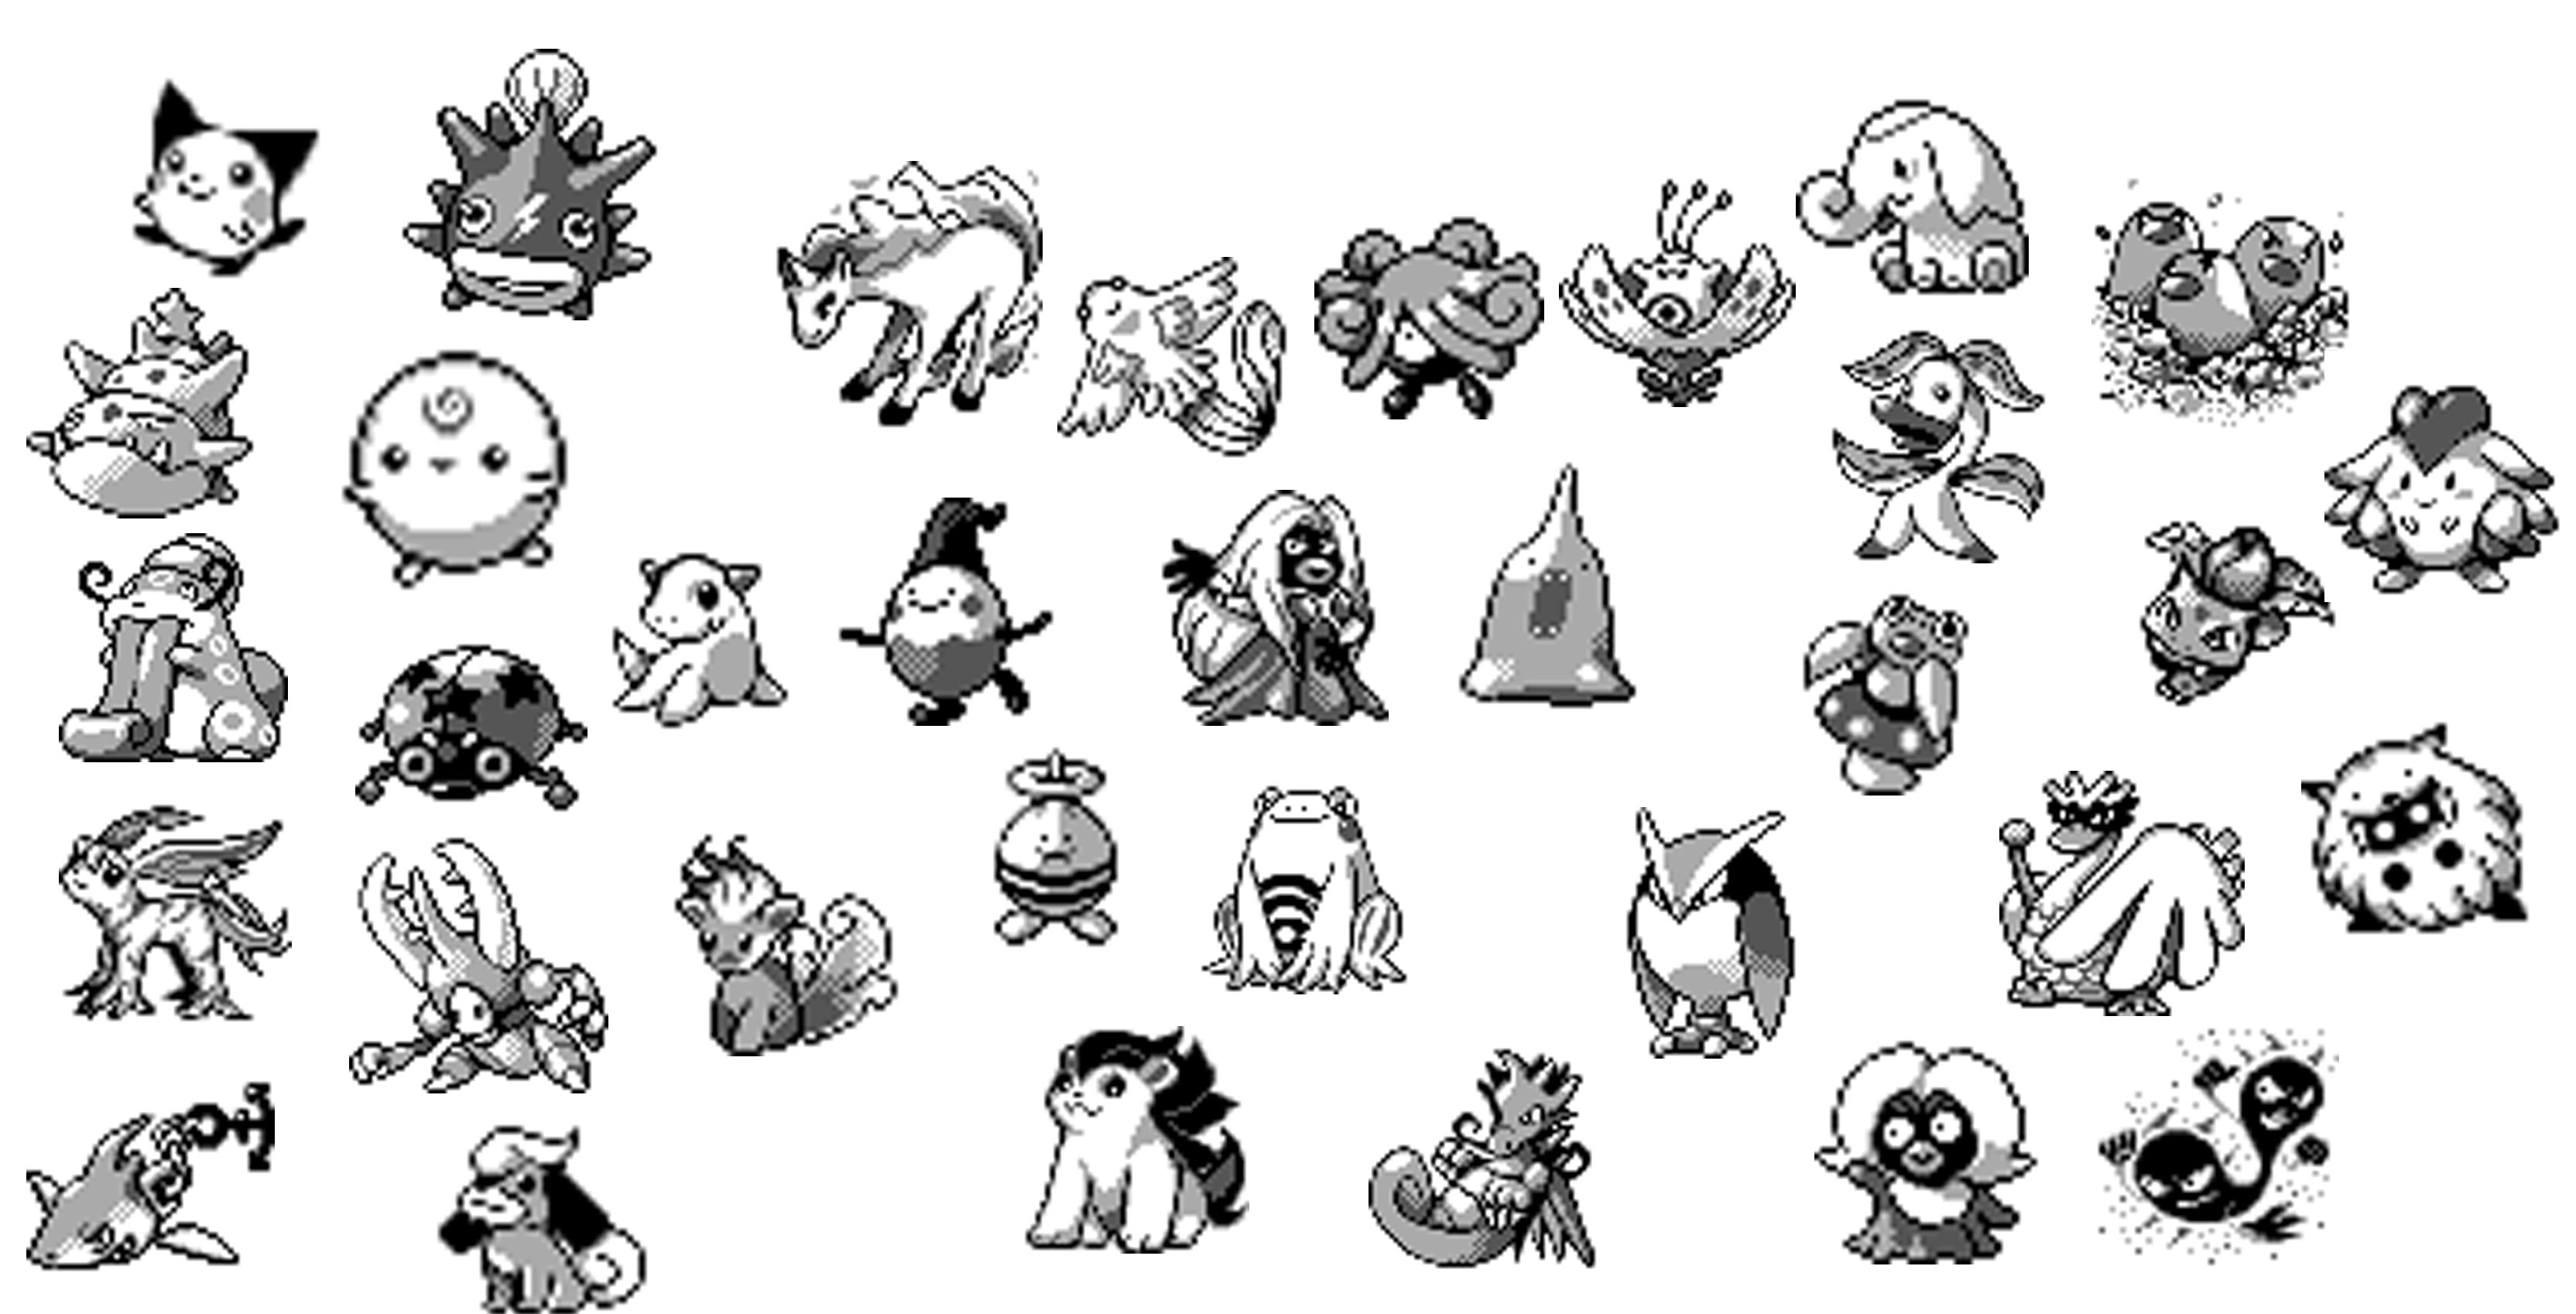 Dataminers have found unreleased Pokémon sprites in Gold and Silver